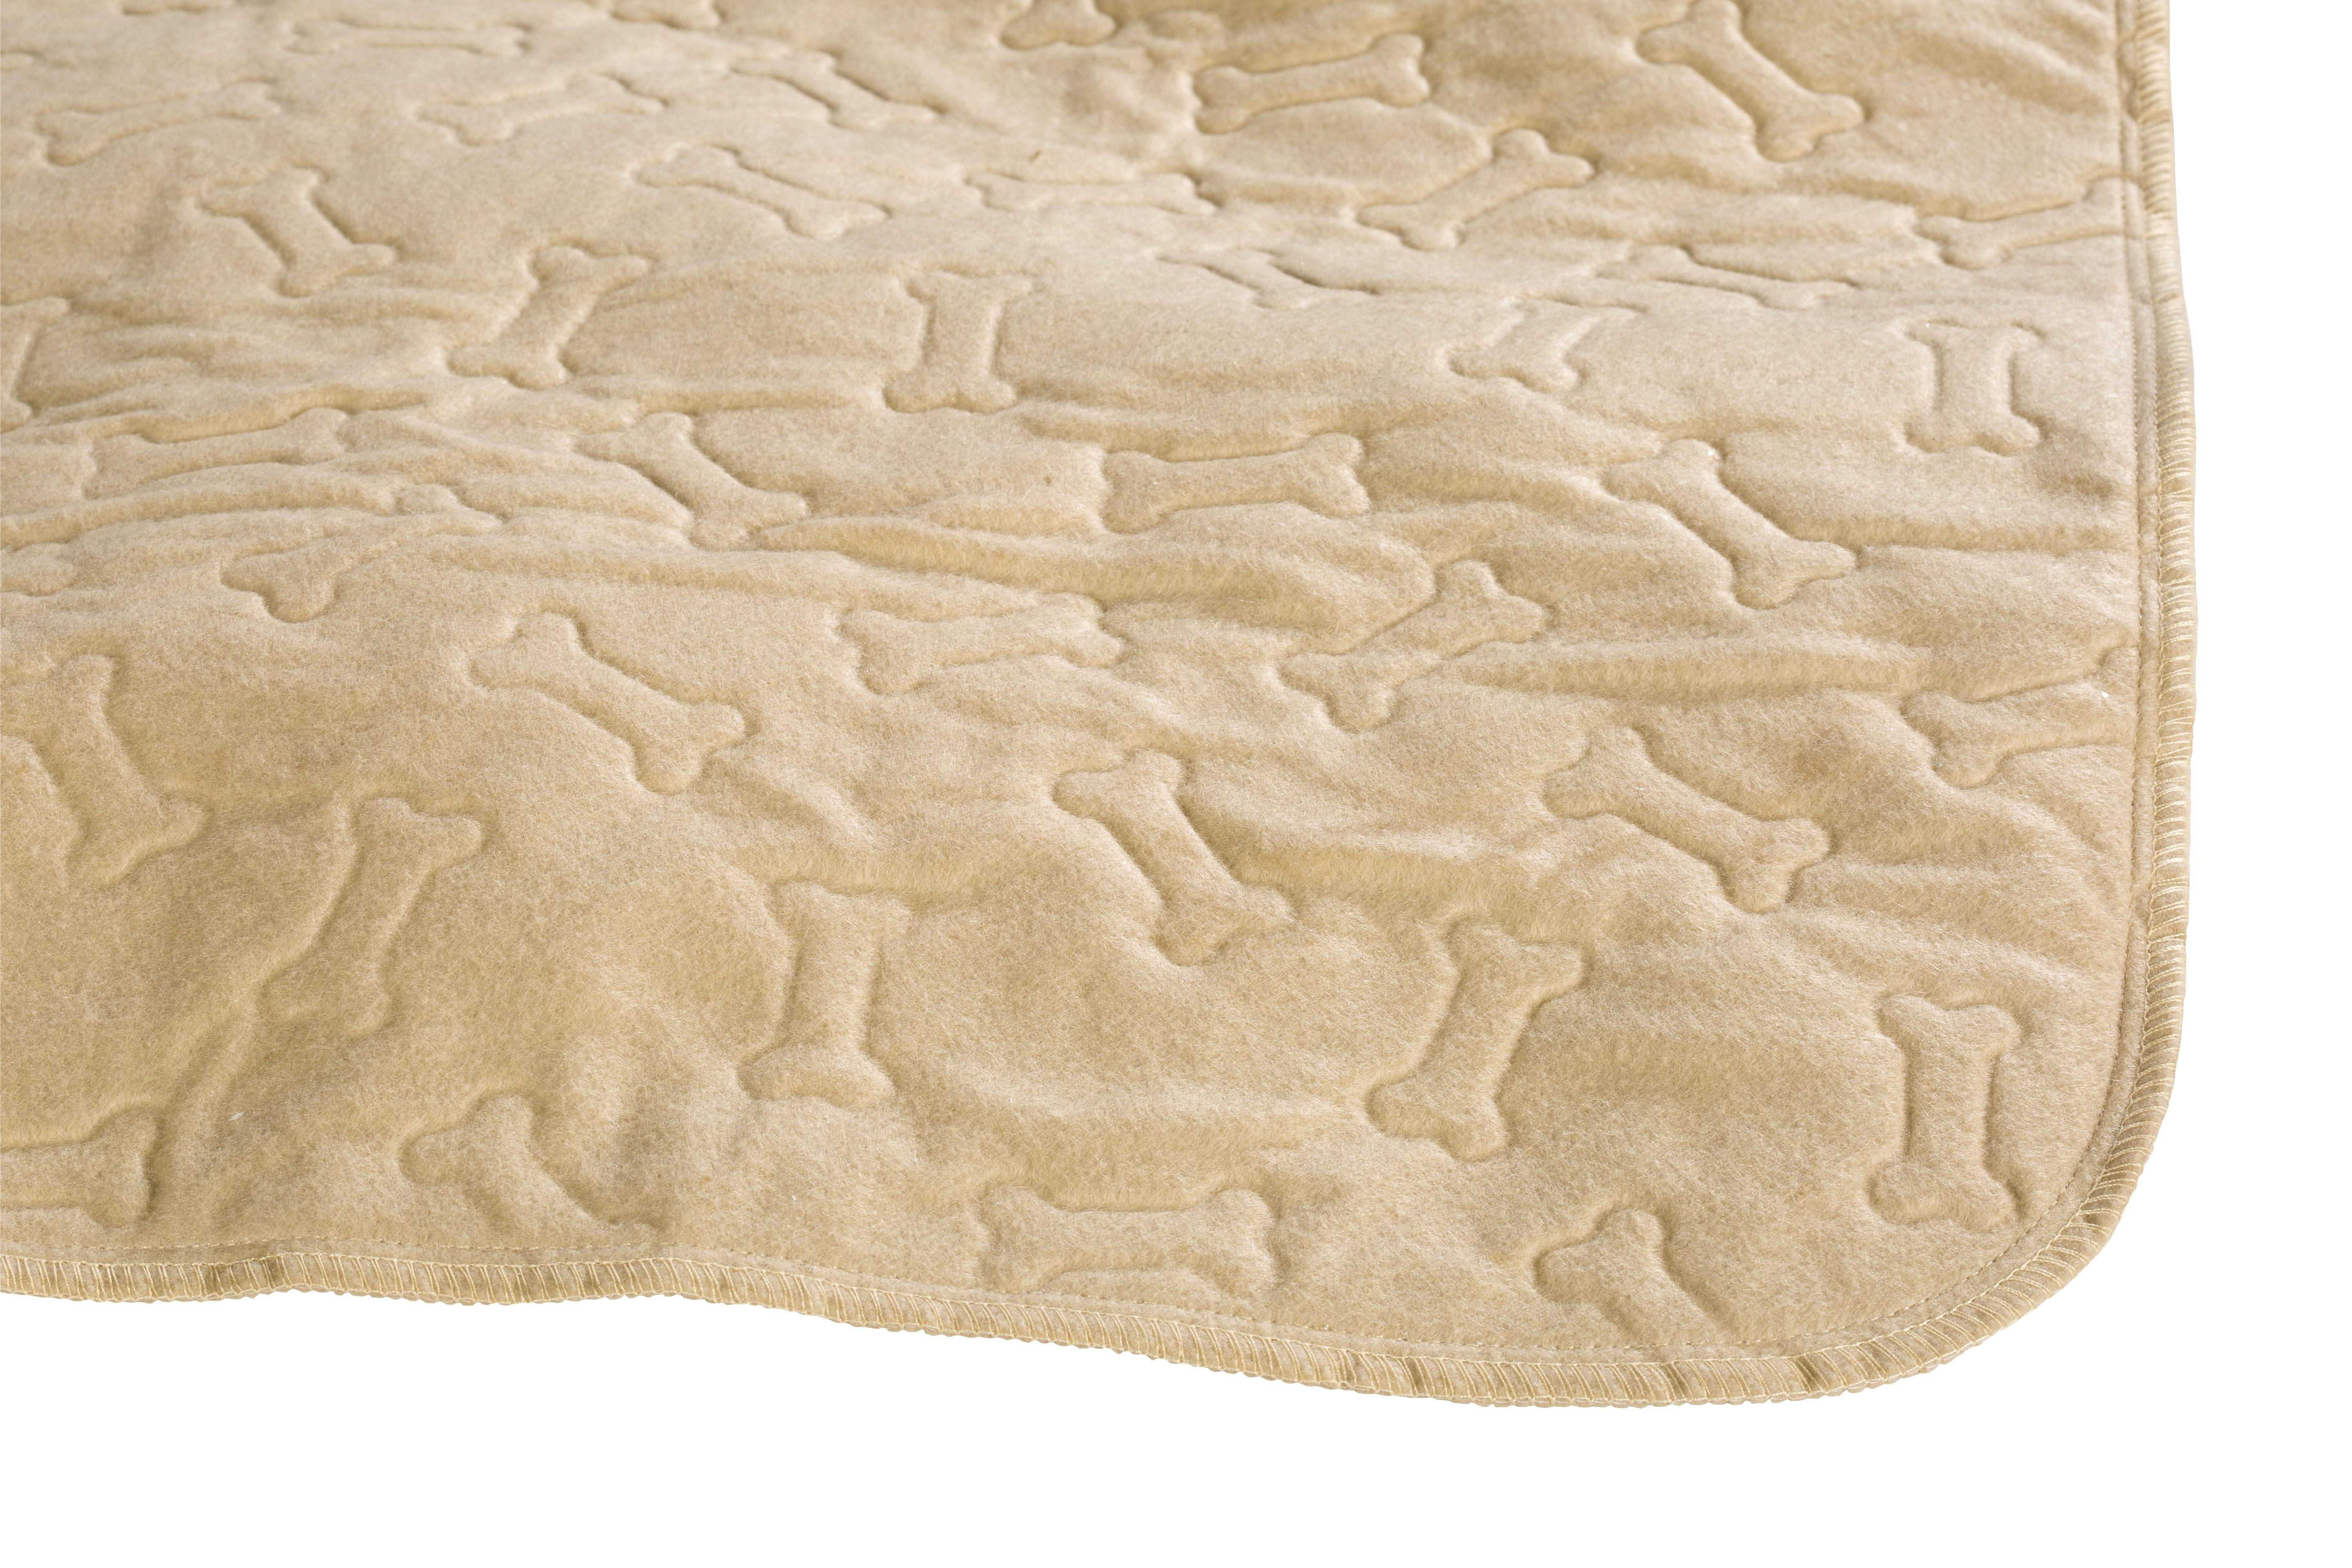 Tall Tails Waterproof Dog Pad, 33-in x 21-in